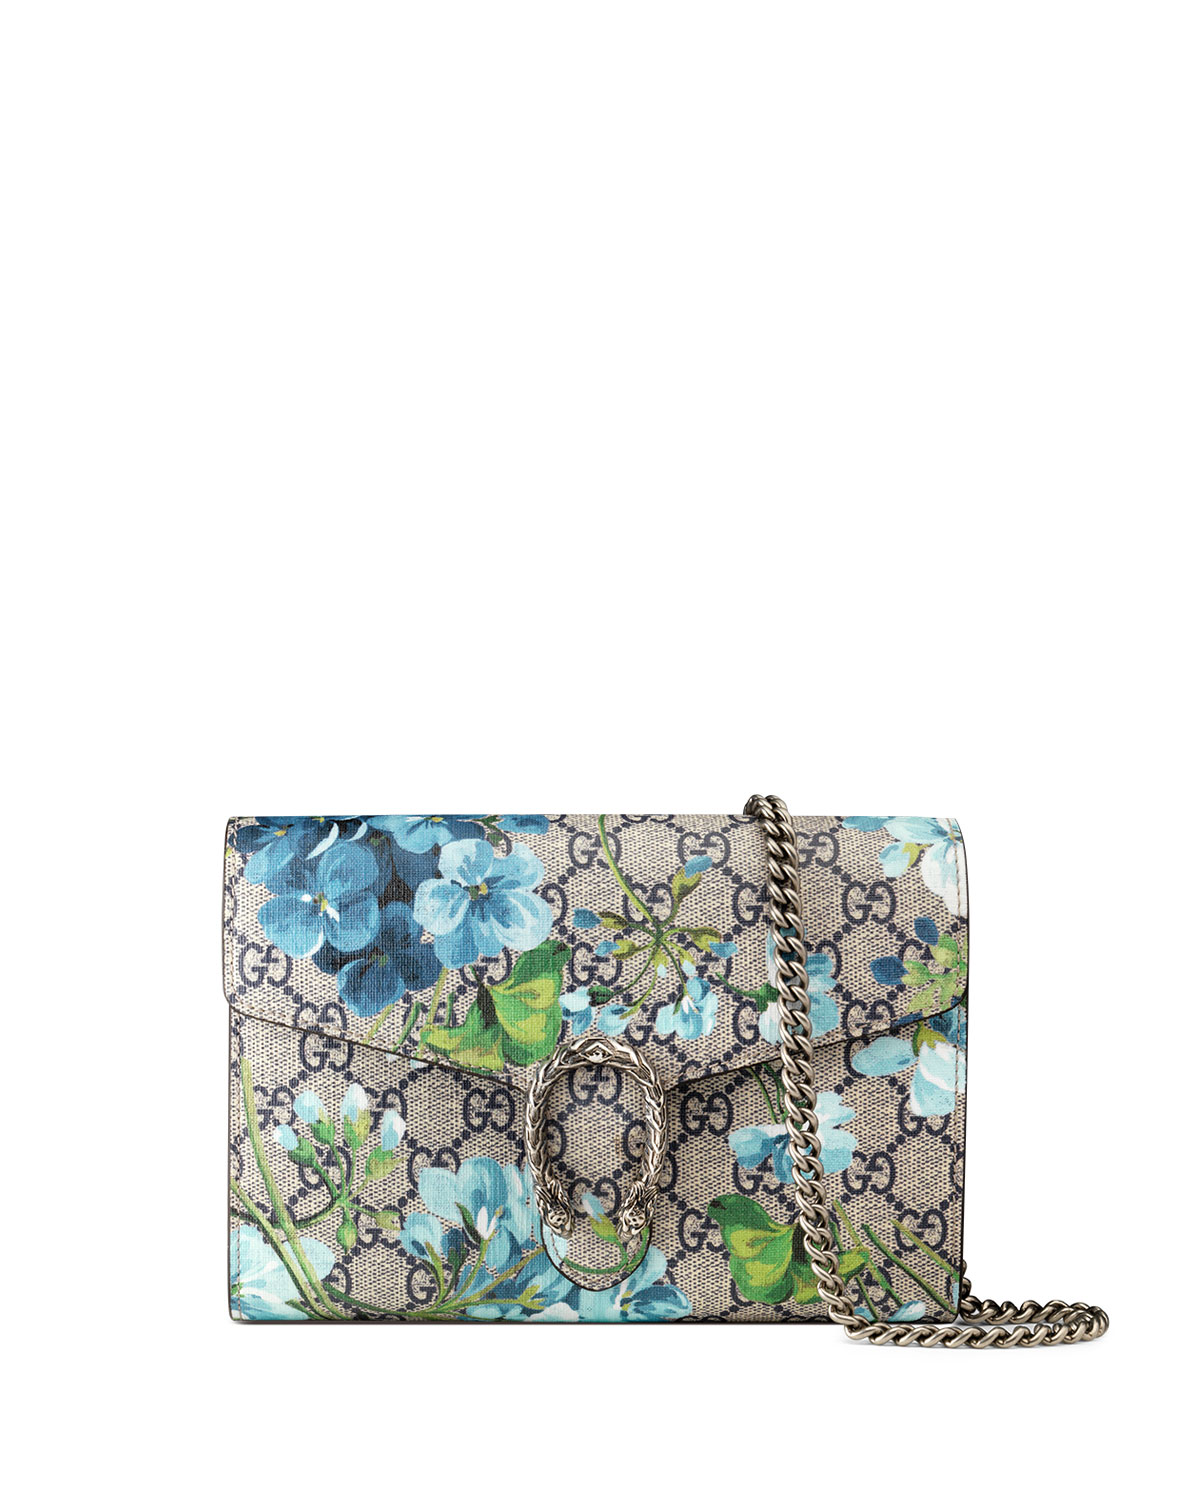 Gucci Dionysus Blooms-Print Mini Chain Bag e6ef2d1791702